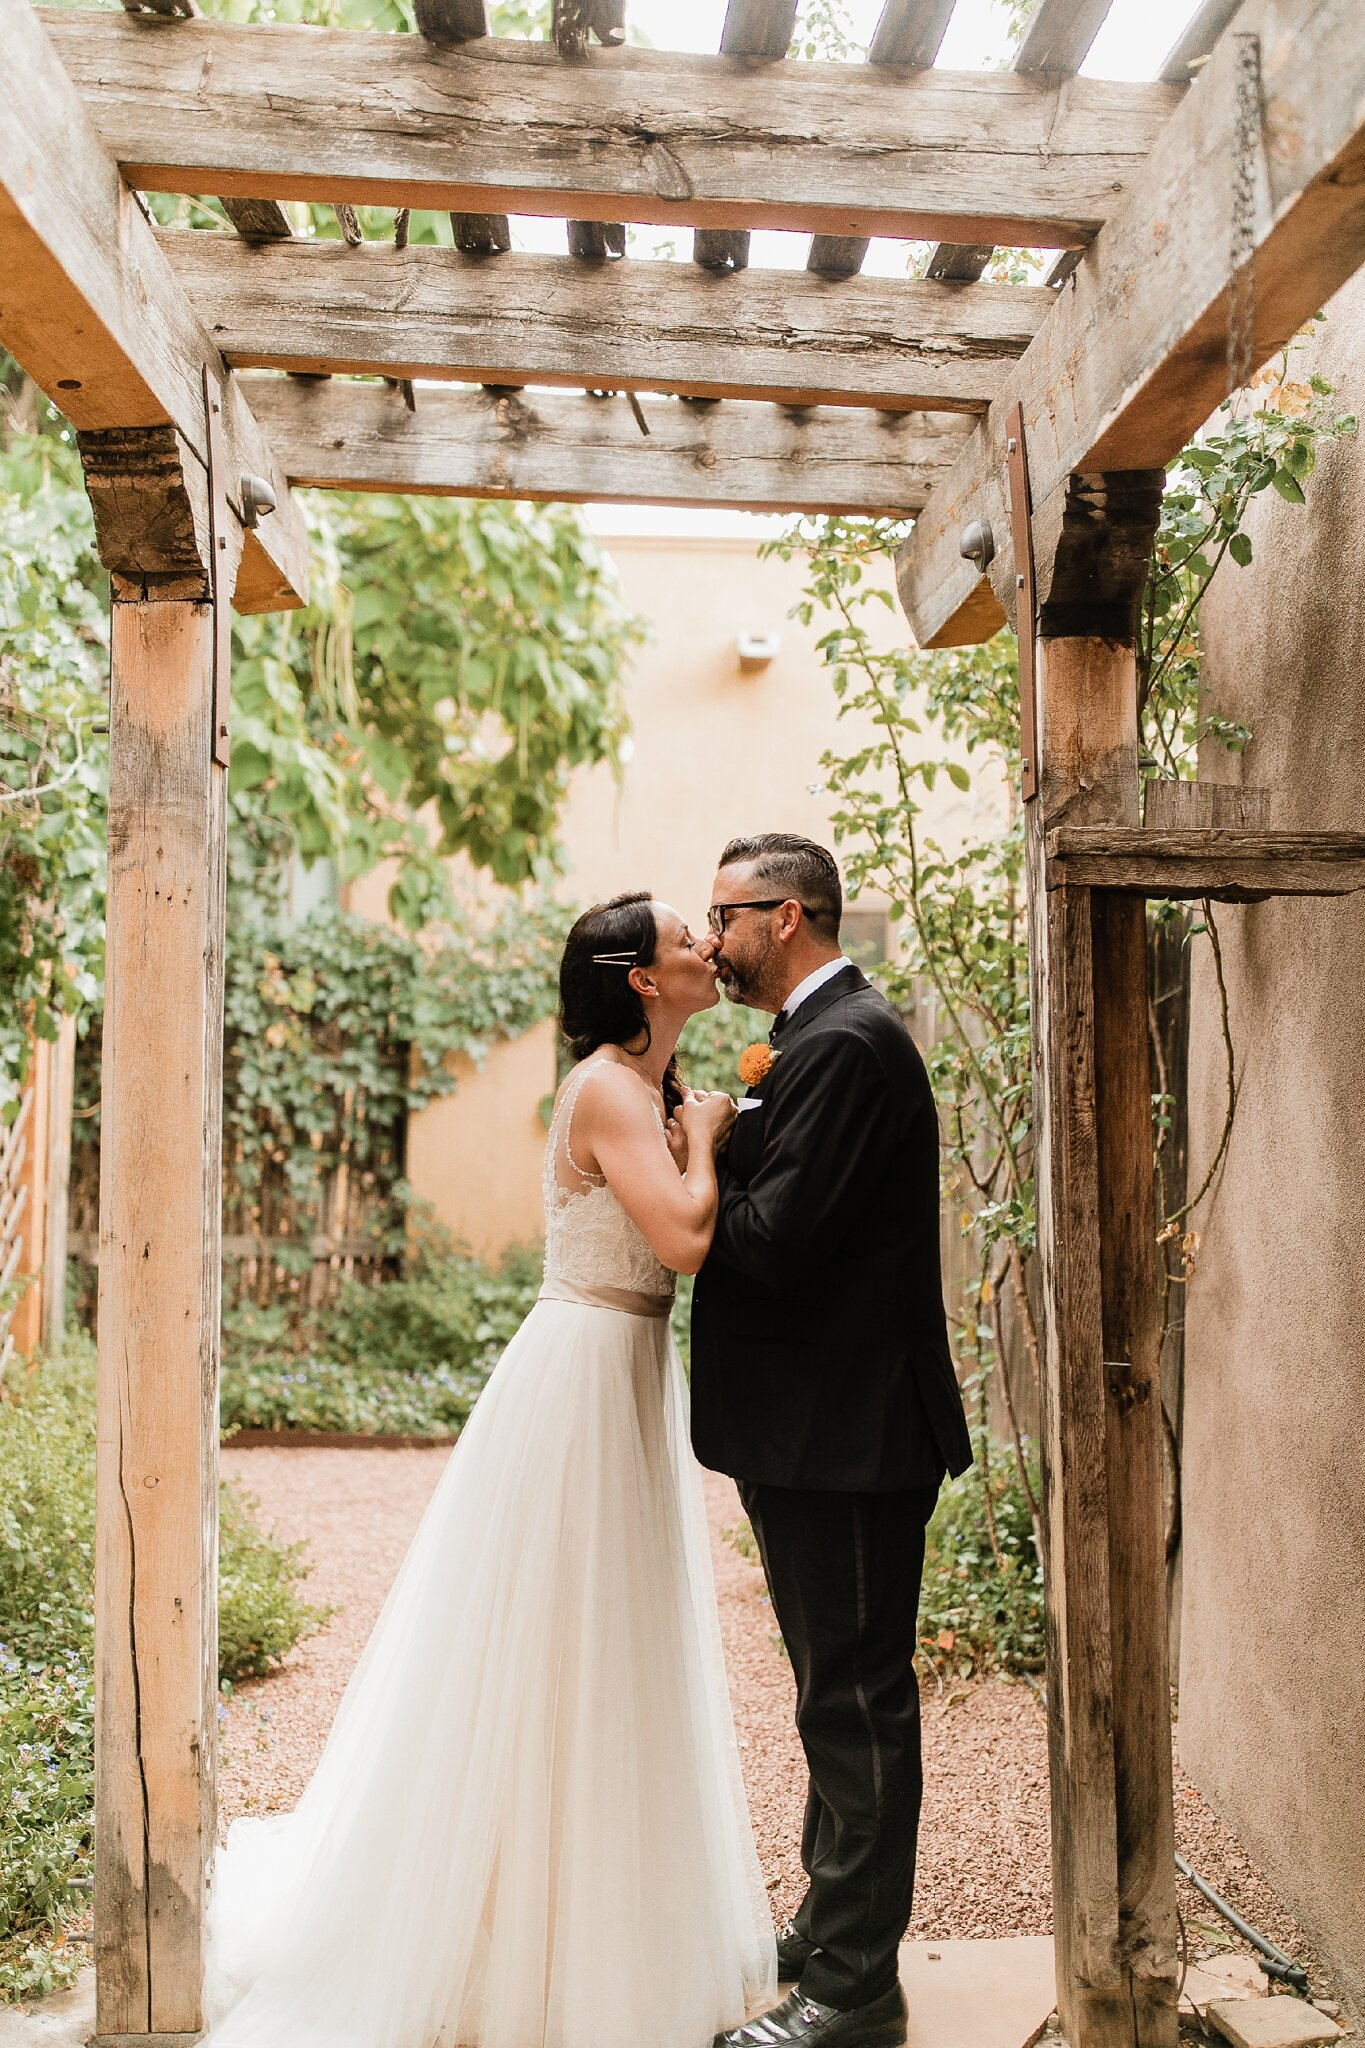 Alicia+lucia+photography+-+albuquerque+wedding+photographer+-+santa+fe+wedding+photography+-+new+mexico+wedding+photographer+-+new+mexico+wedding+-+bed+and+breakfast+wedding+-+sarabande+wedding+-+sarabande+bed+and+breakfast+wedding_0050.jpg